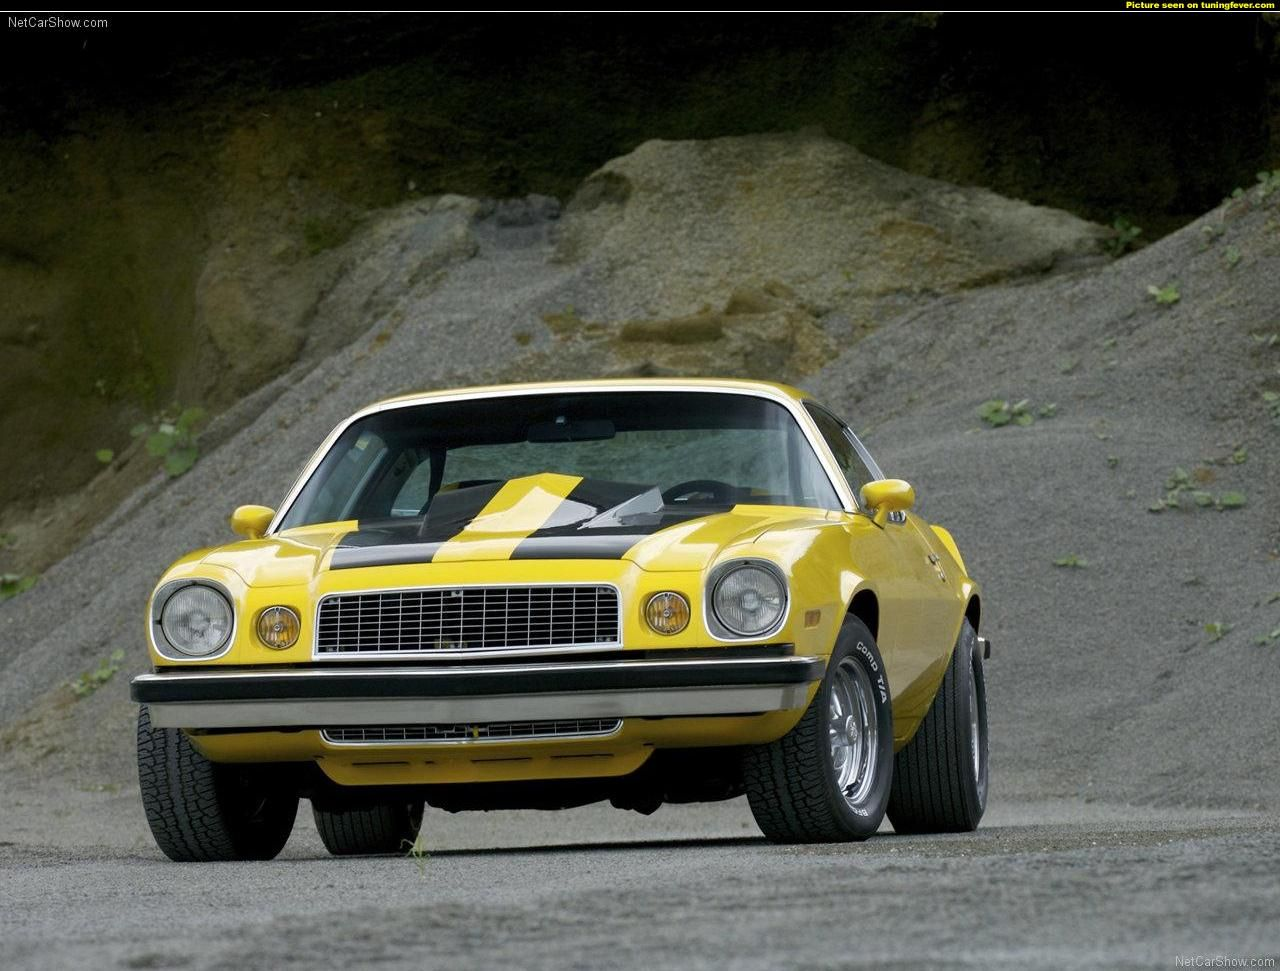 1976 camaro clipart clipart images gallery for free download.